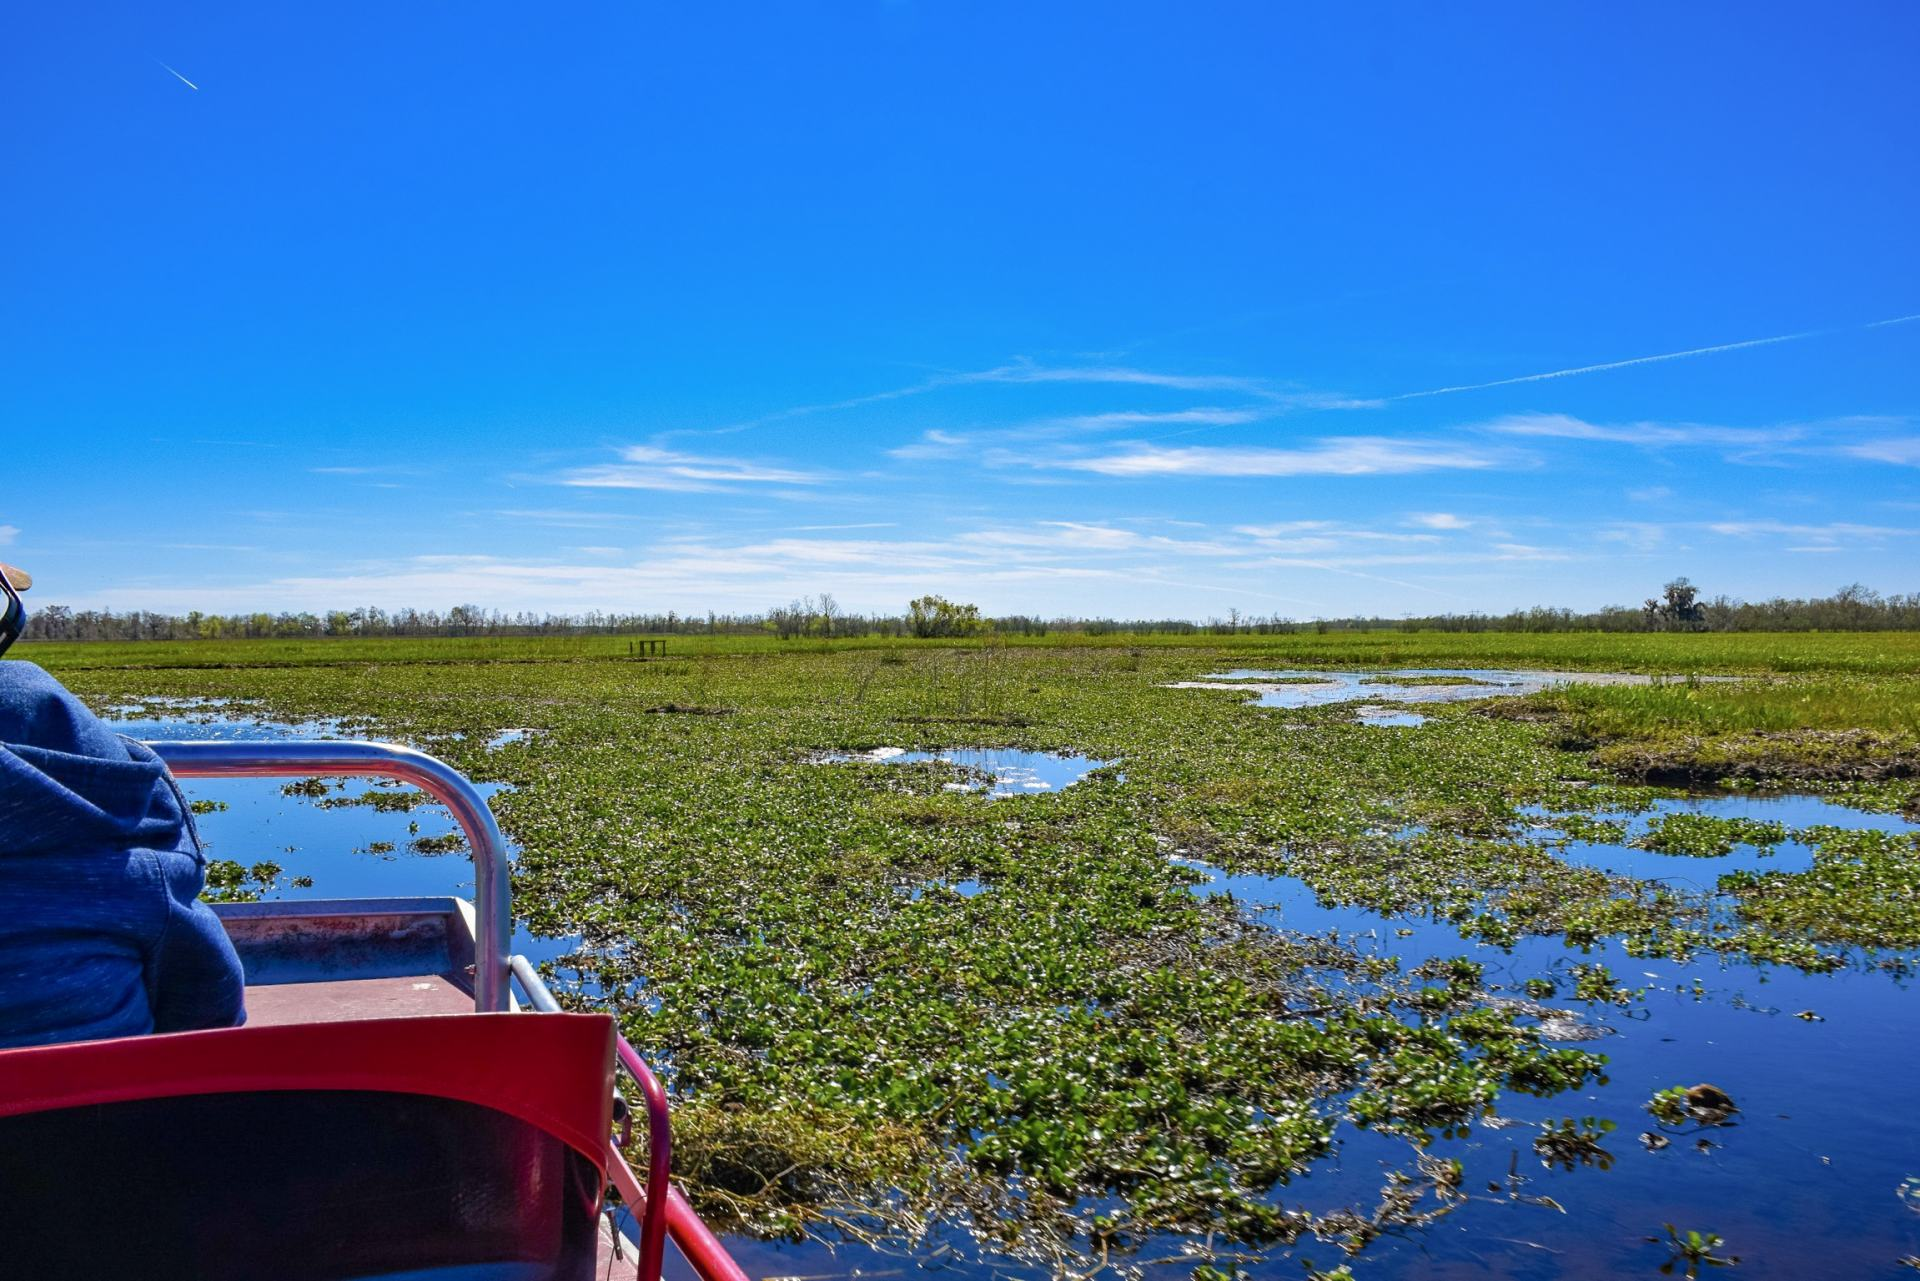 Airboating in Louisiana